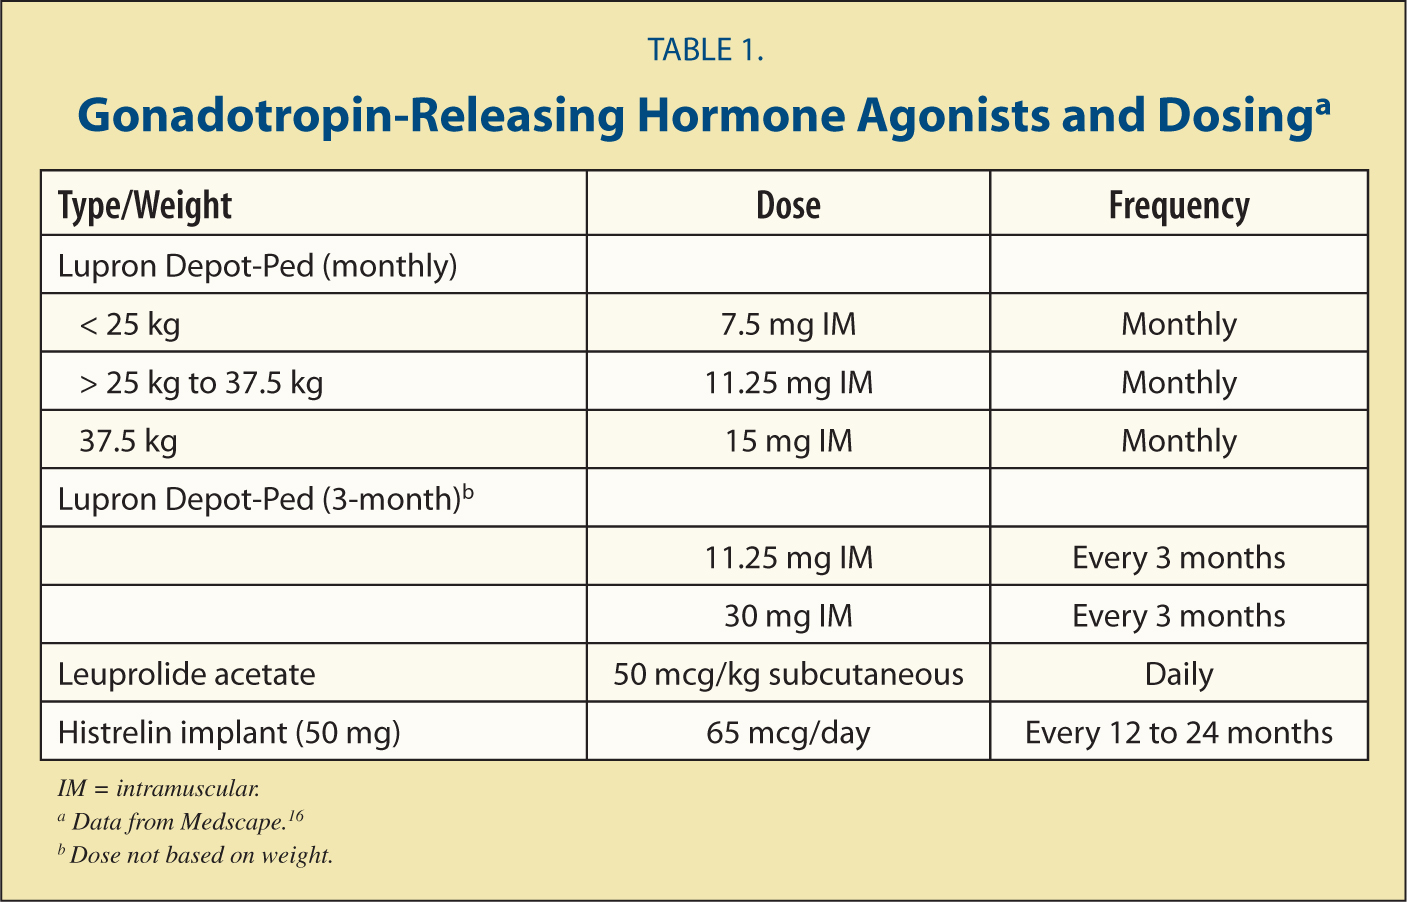 Gonadotropin-Releasing Hormone Agonists and Dosinga